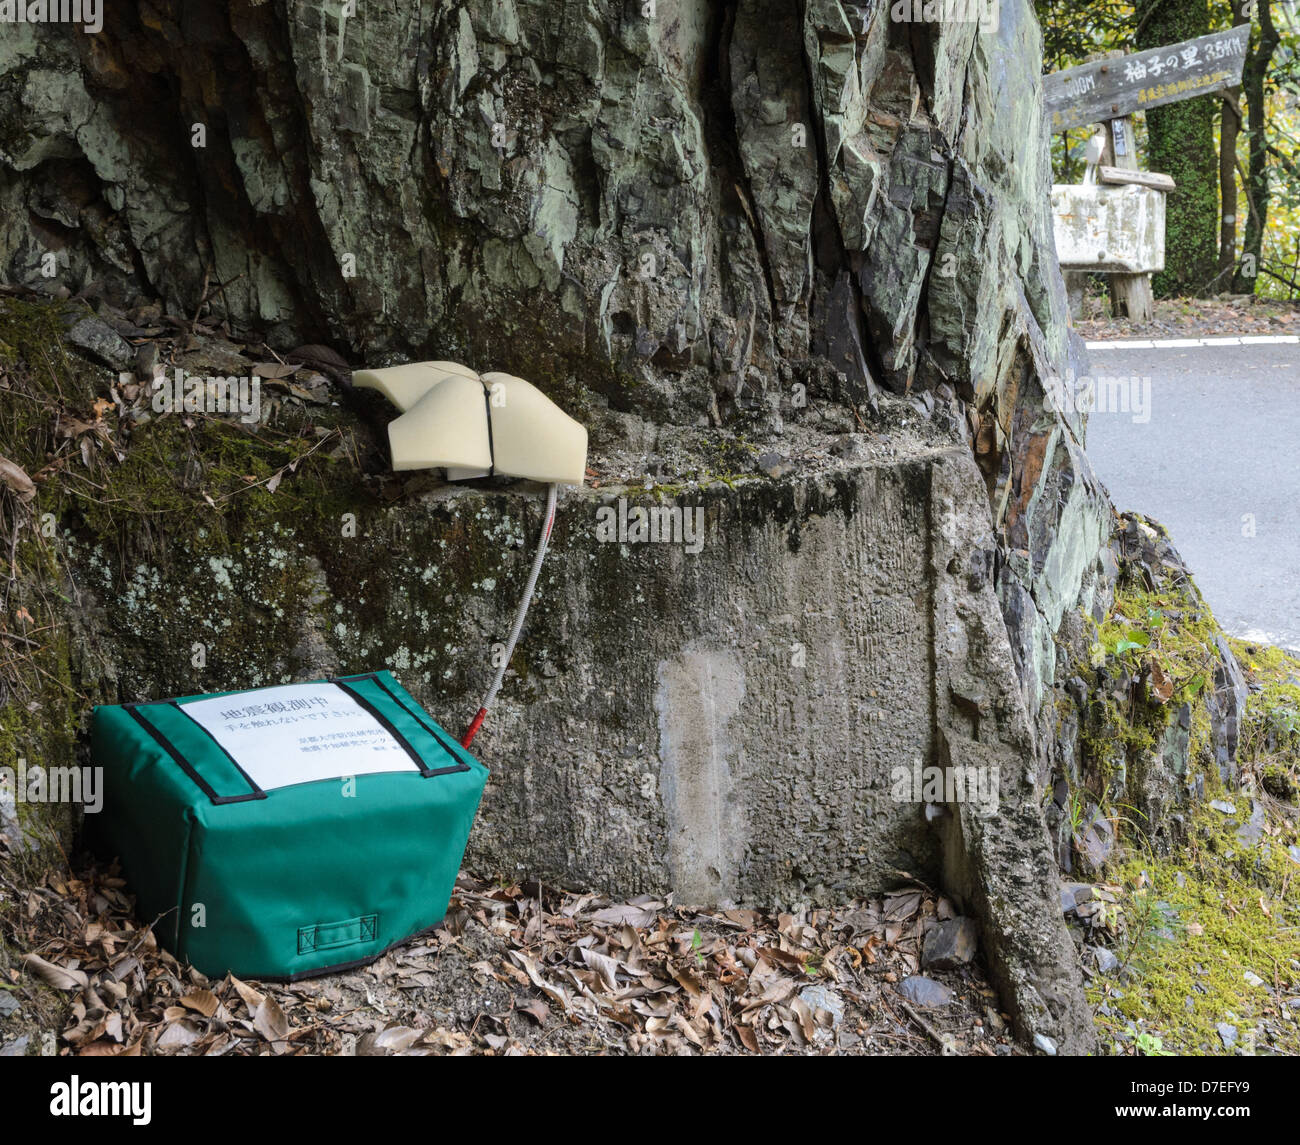 Seismometer (seismograph) monitors earthquakes in the earthquake prone country of Japan - early warning system; - Stock Image